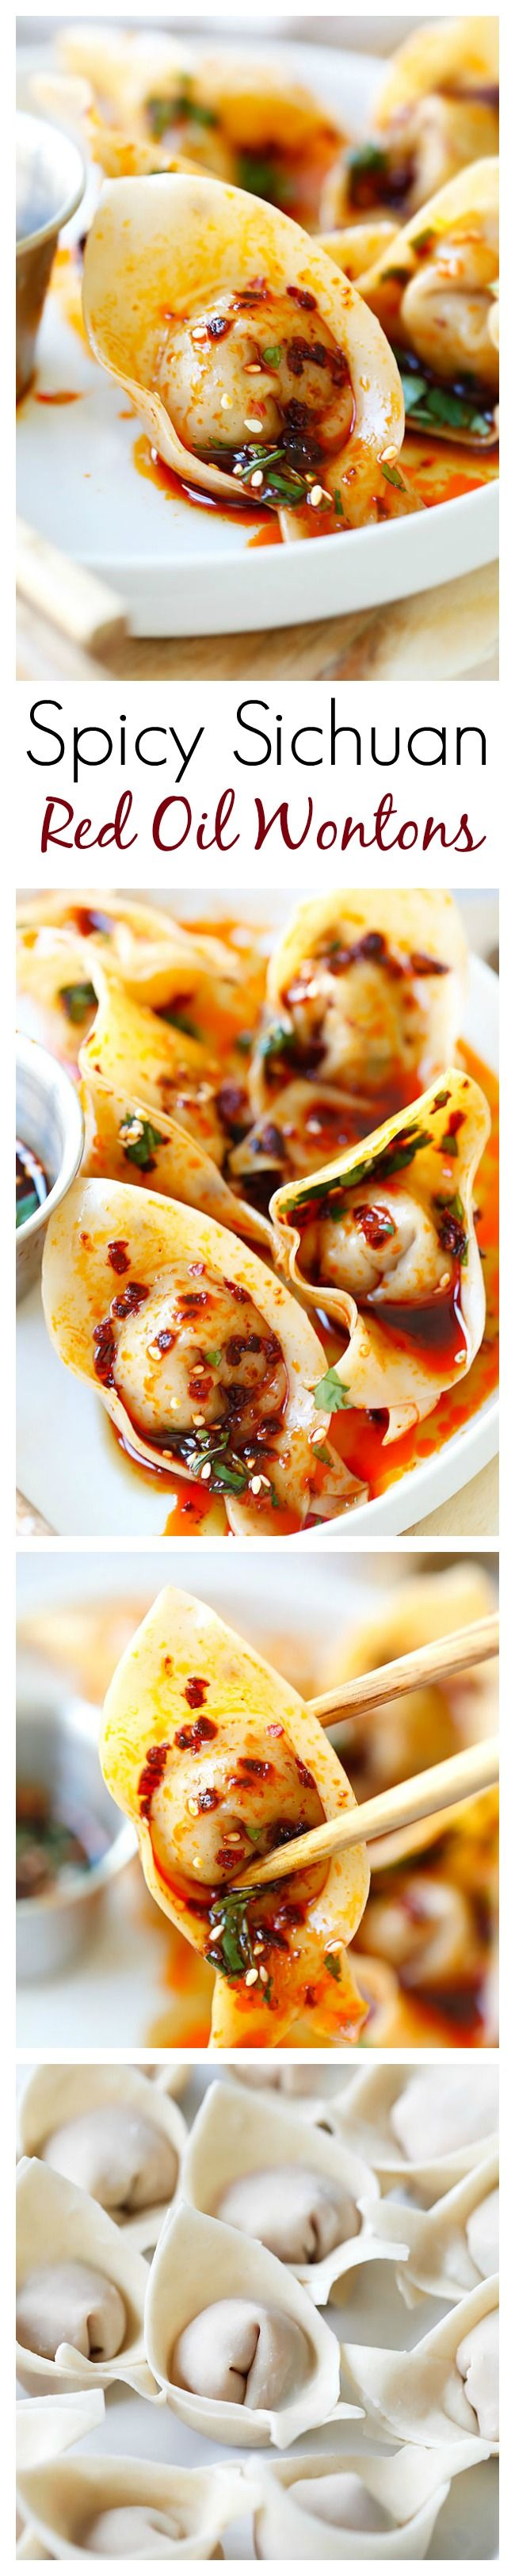 Recipes By Course Sichuan Red Oil Wontons